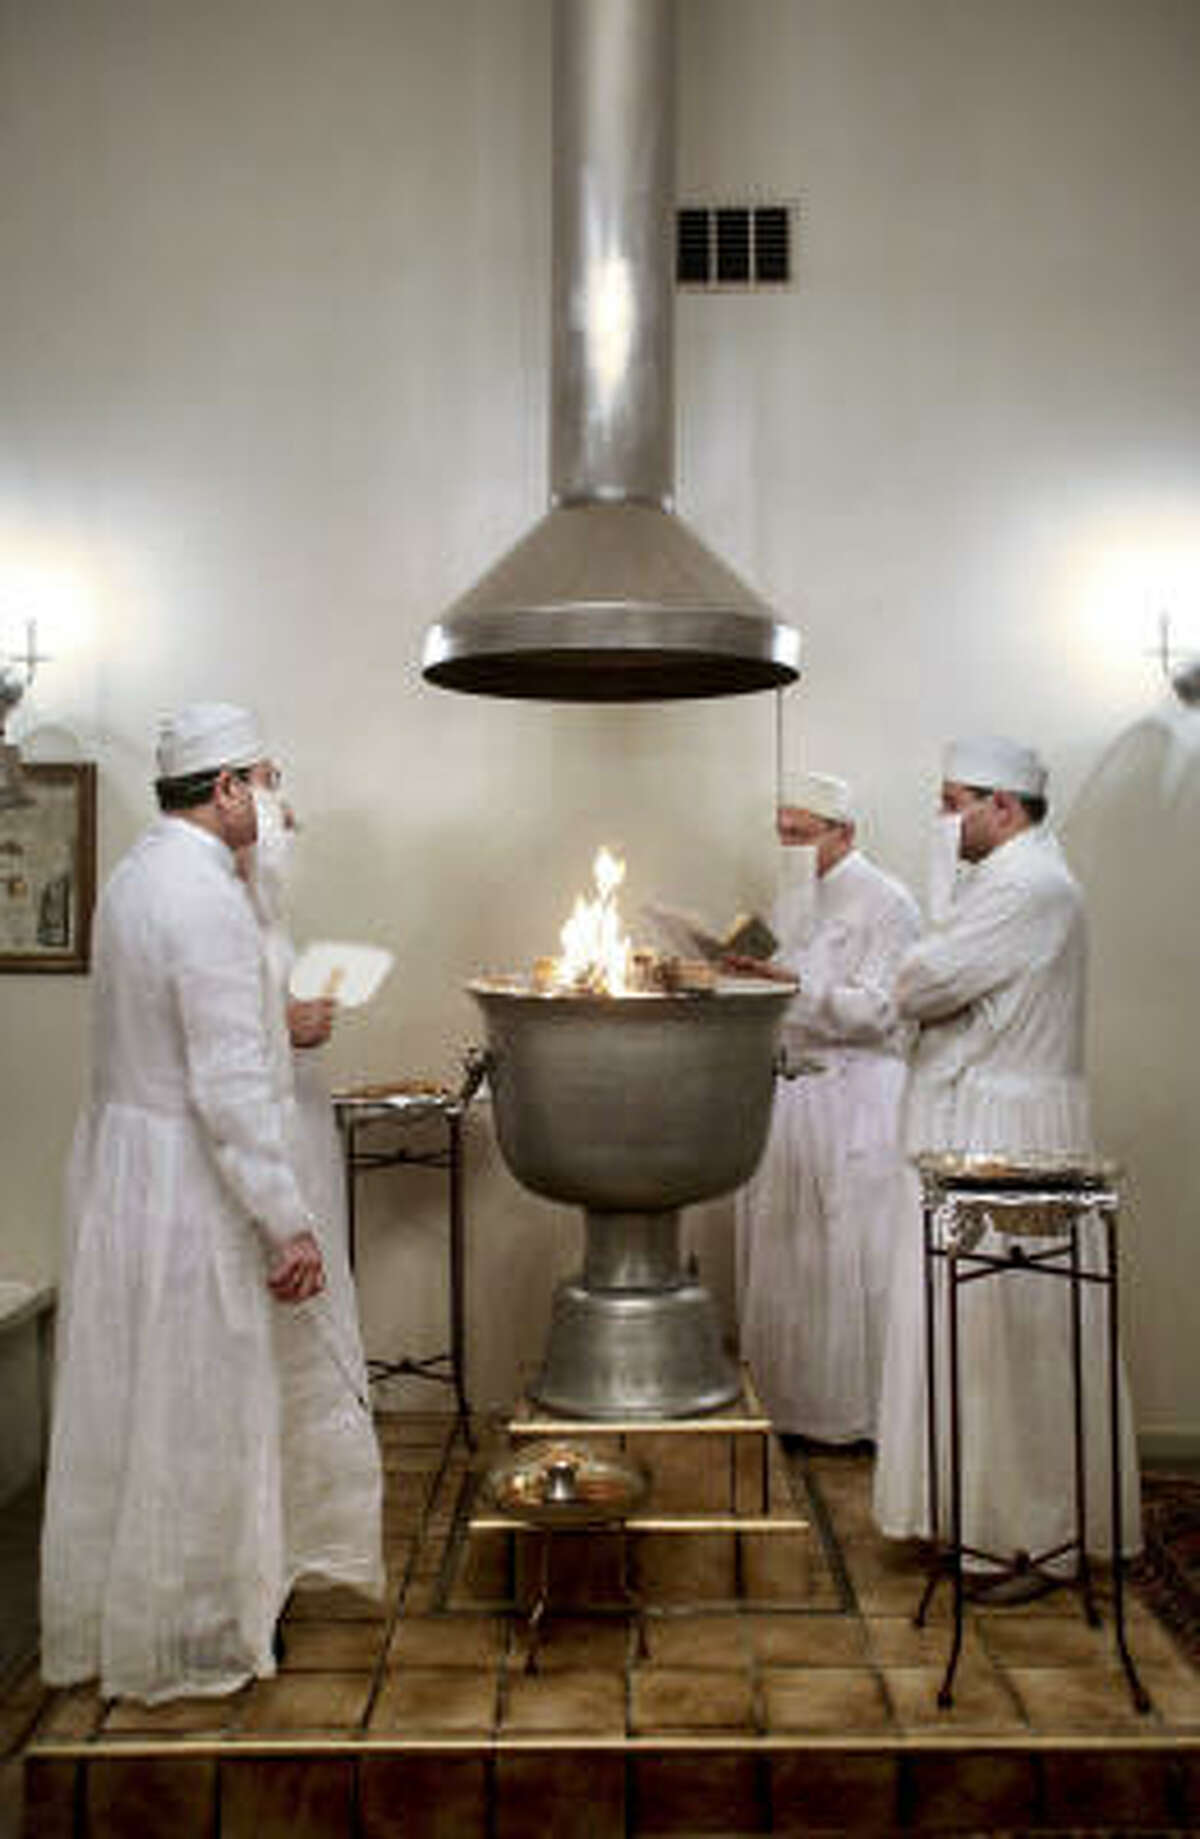 ZOROASTRIANISM: Zoroastrianism pre-dates Christianity and Islam, and many historians say it influenced those faiths, and cross-fertilized Judaism as well, with its doctrines of one God, a dualistic universe of good and evil and a final day of judgment. The sacred fire, seen here, is a central symbol of Zoroastrianism.